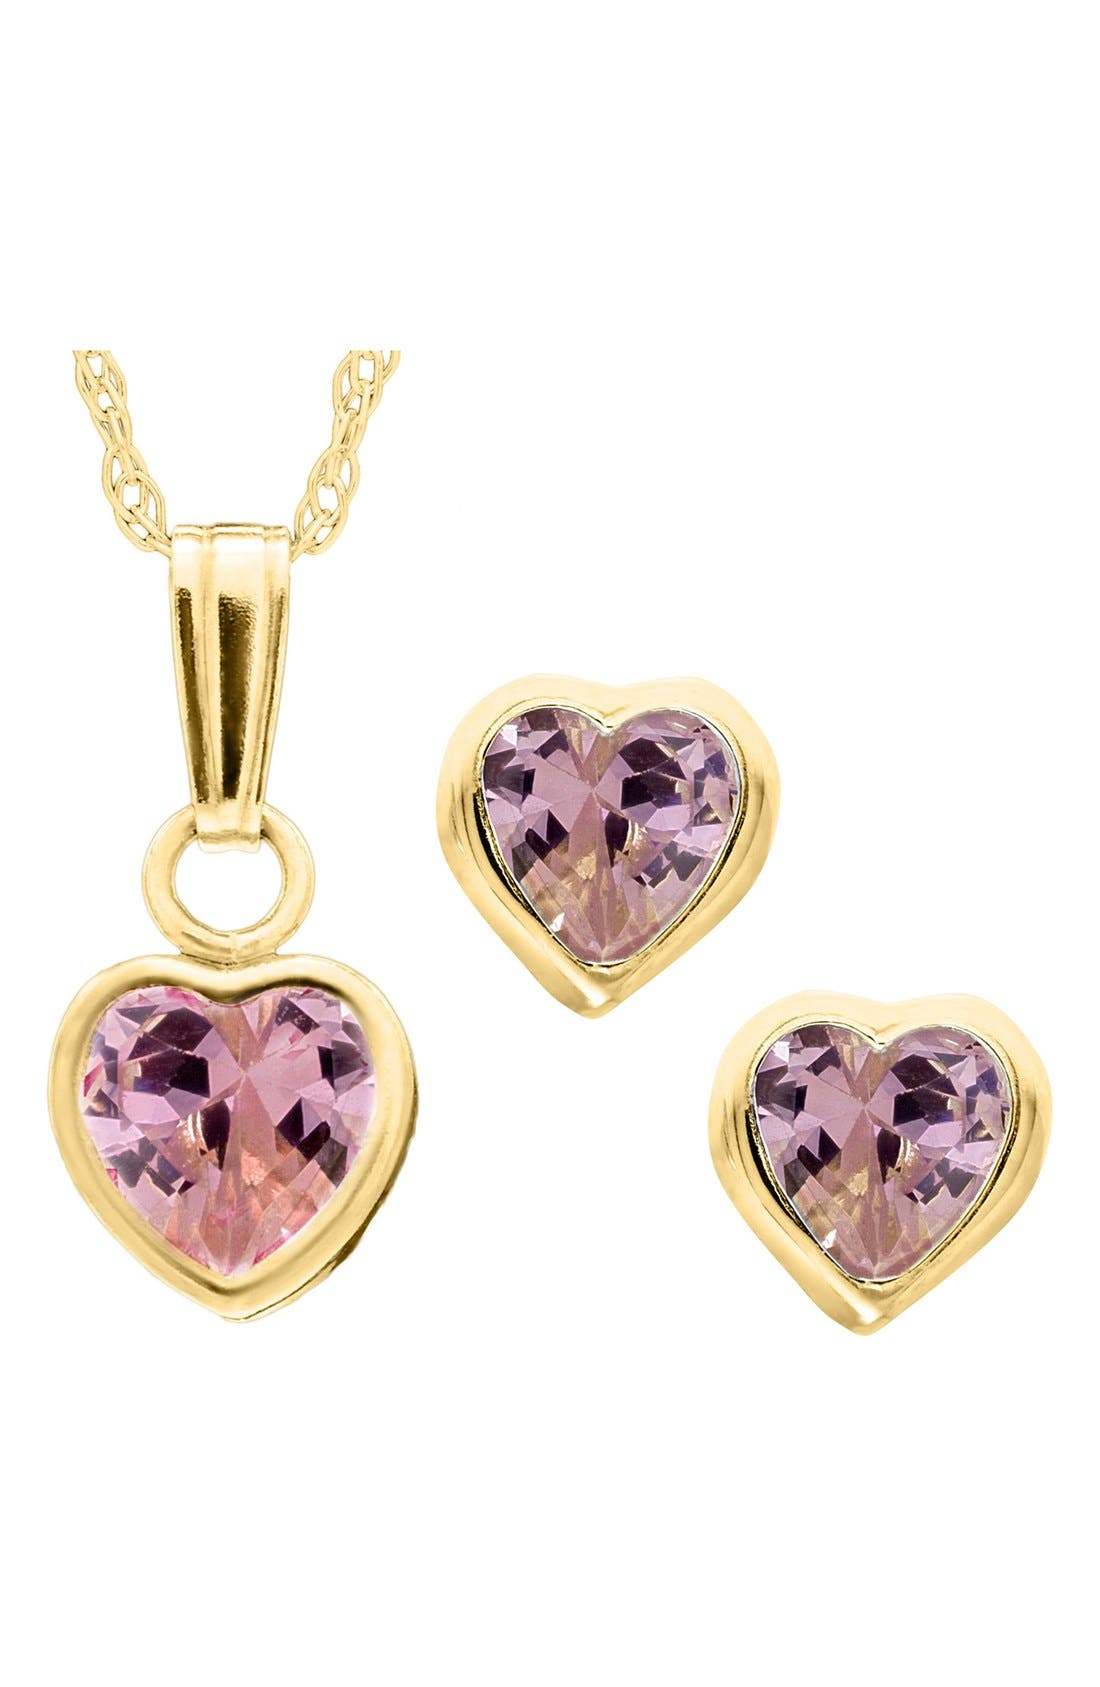 14k Gold Birthstone Necklace & Stud Earrings,                             Main thumbnail 1, color,                             October